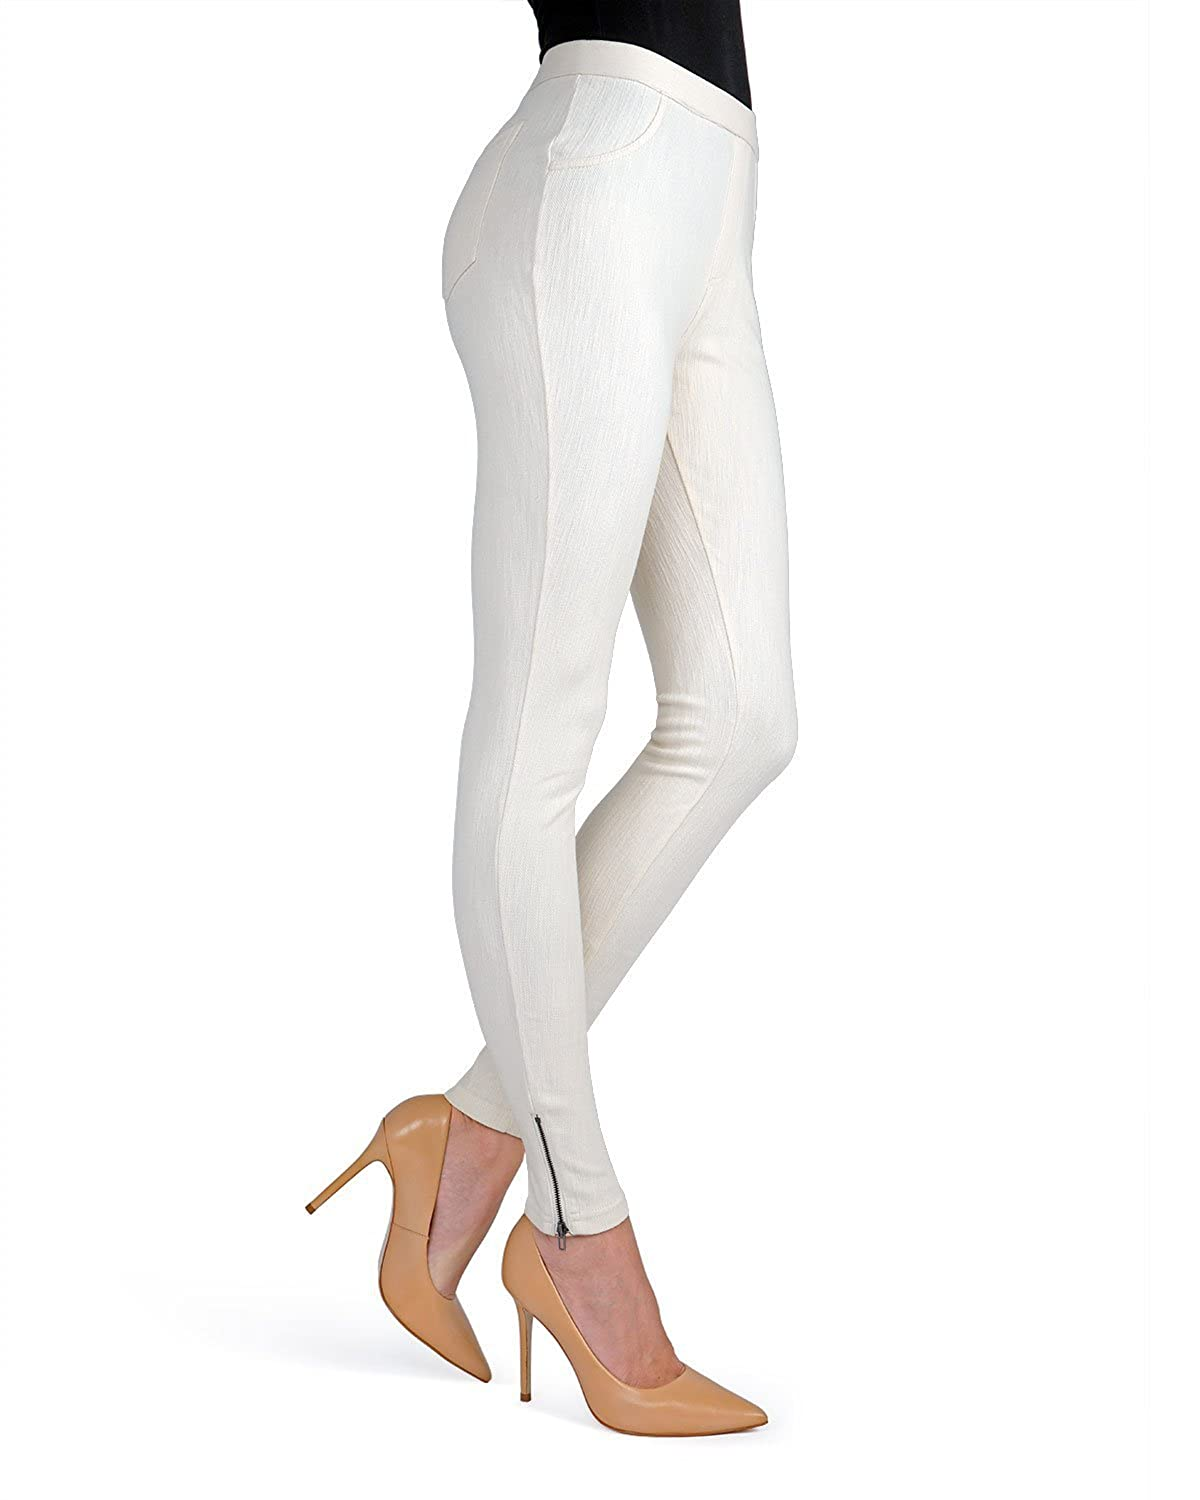 fc8ac93fa65 MeMoi fashion legwear collection styles women from small to plus size with  the fashion and fit you ll love. Inseam  29